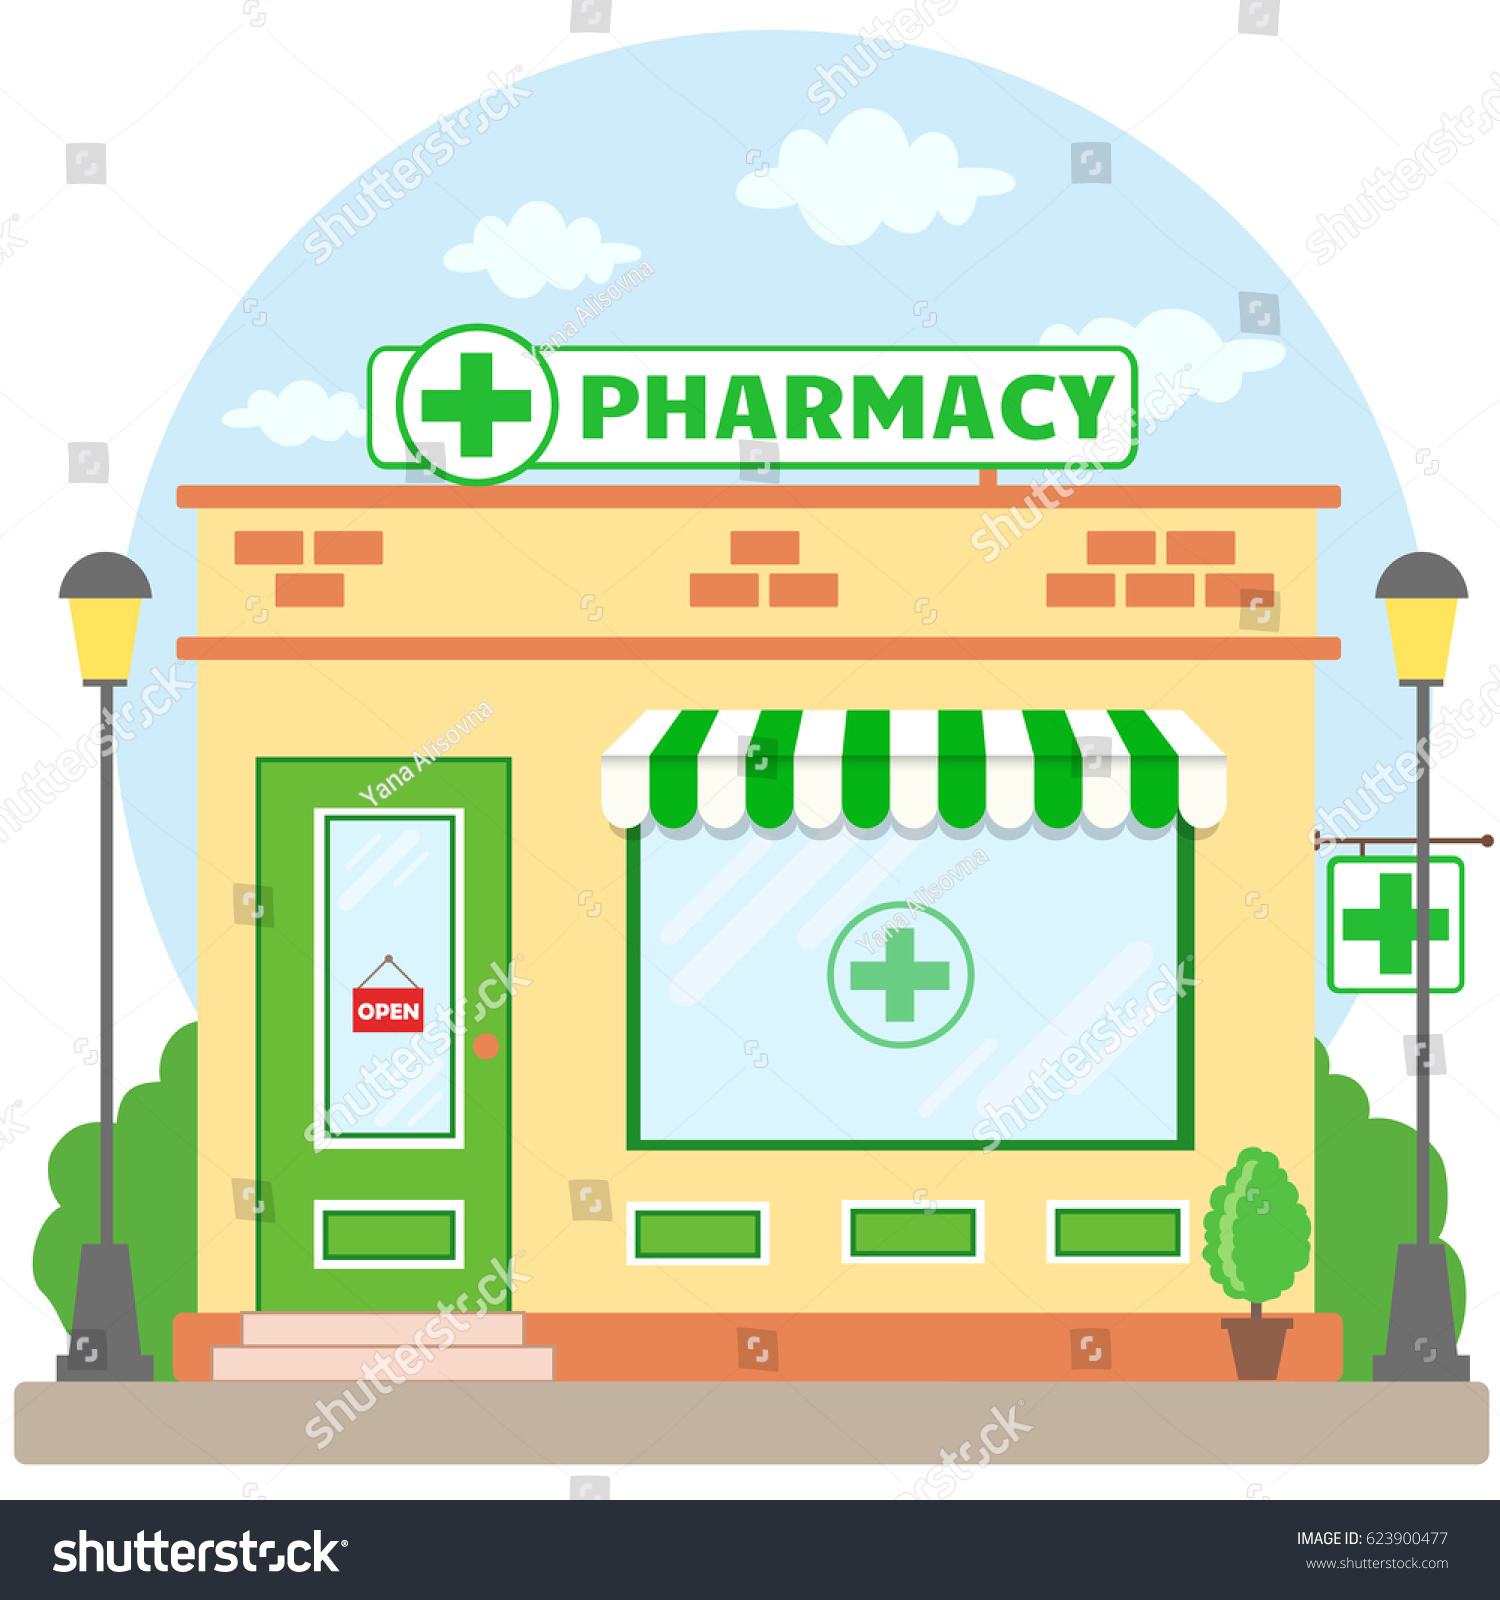 facade pharmacy store signboard awning symbol stock vector 623900477 shutterstock. Black Bedroom Furniture Sets. Home Design Ideas